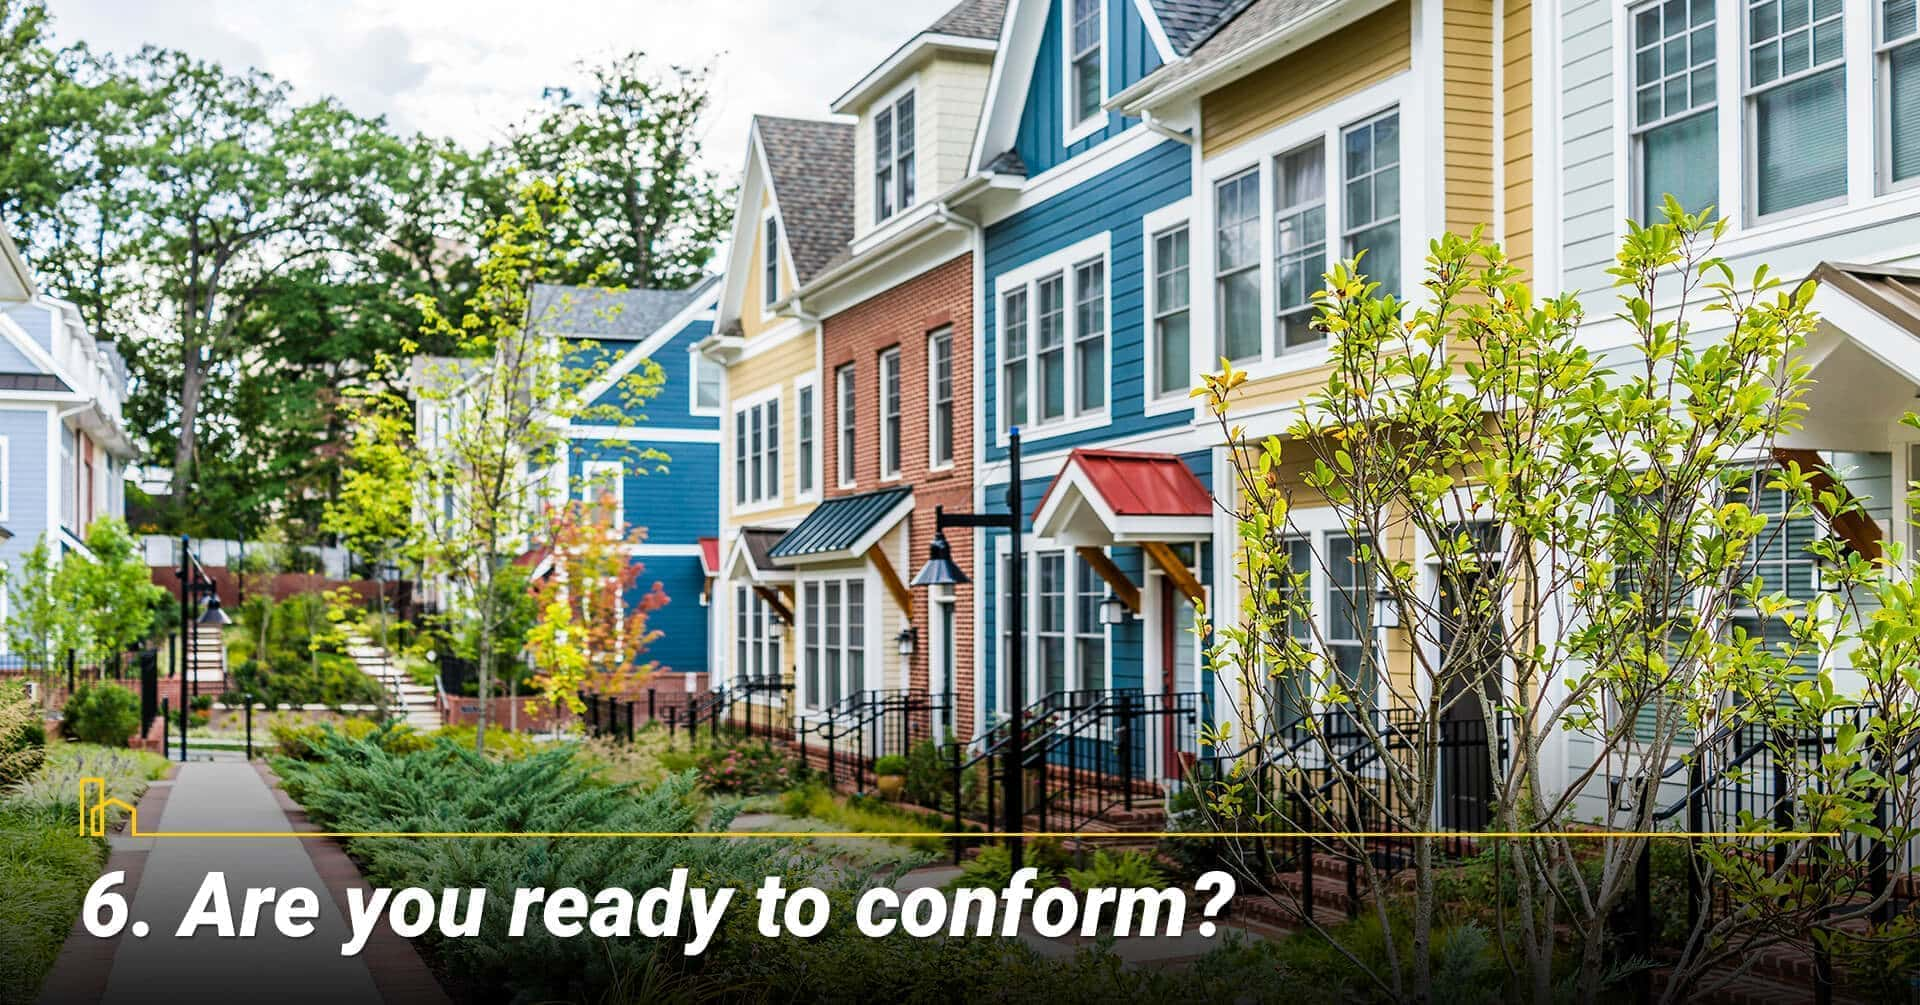 Are you ready to conform?